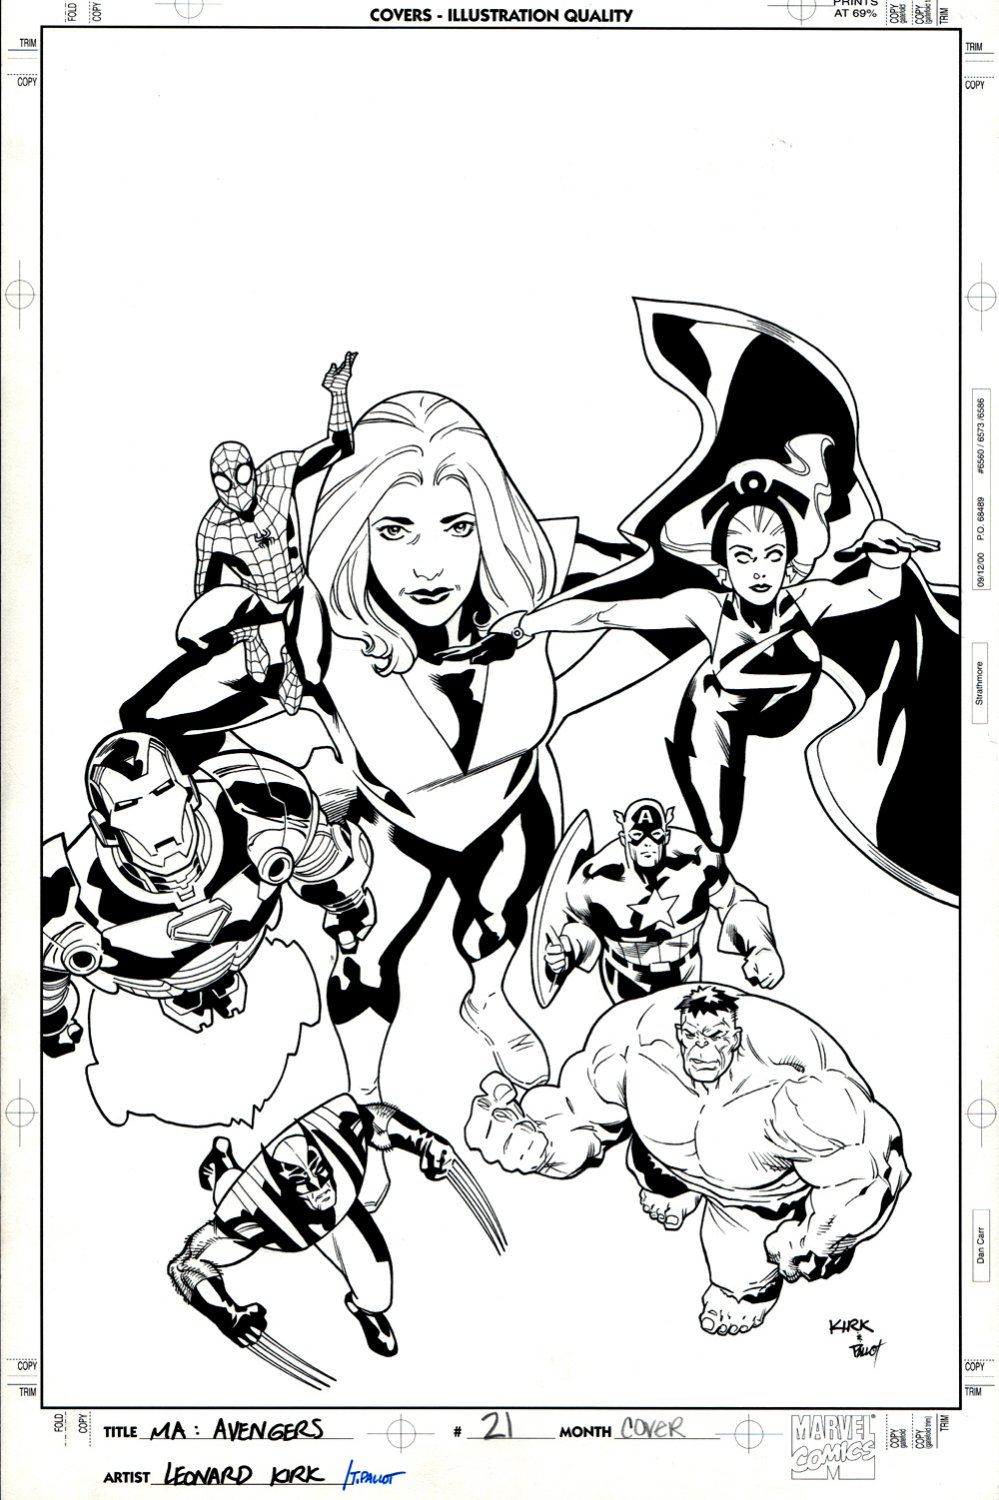 Marvel Adventures The Avengers #21 Cover (Captain America, Iron Man, Spider-Man, Hulk, Storm, Wolverine, Giant-Girl!) 2007